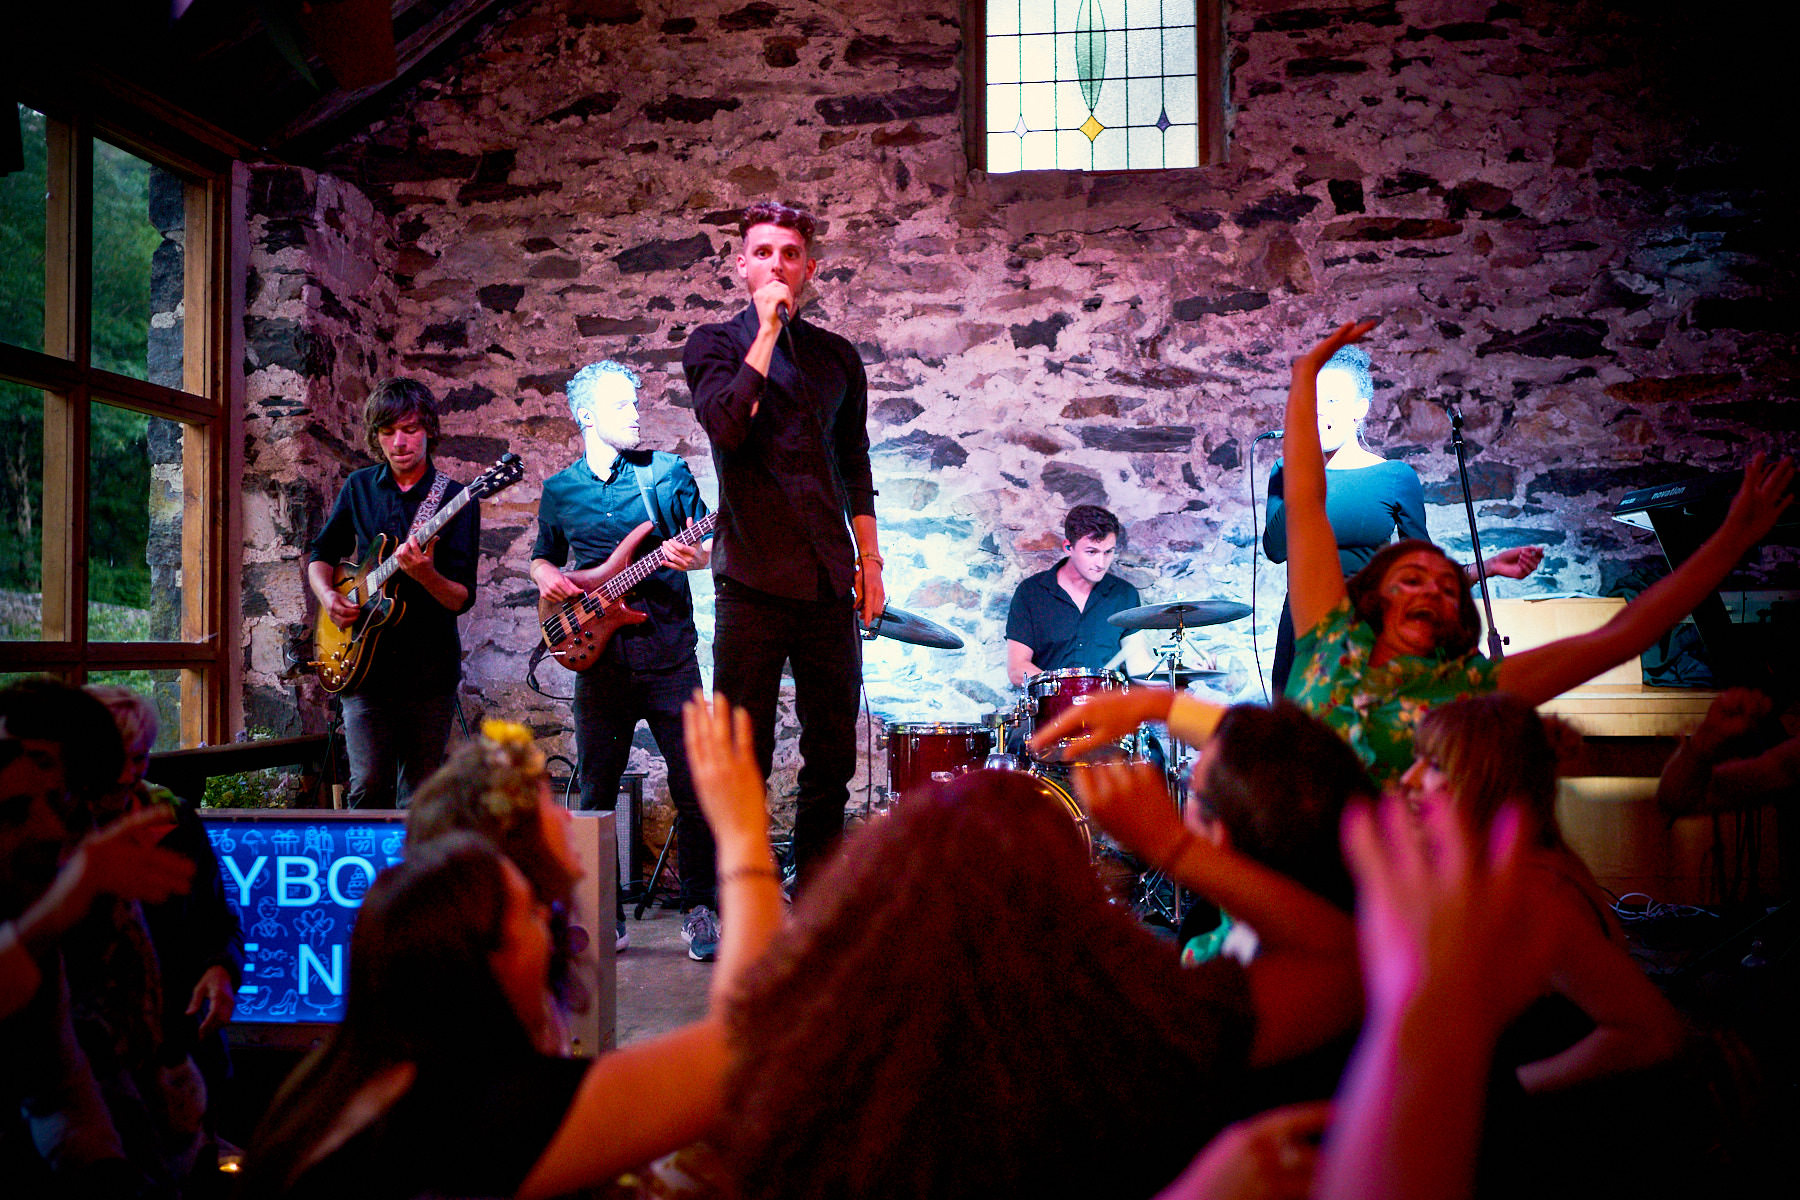 Something For The Weekend Live Wedding Band Playing at Nant Gwynant Barn